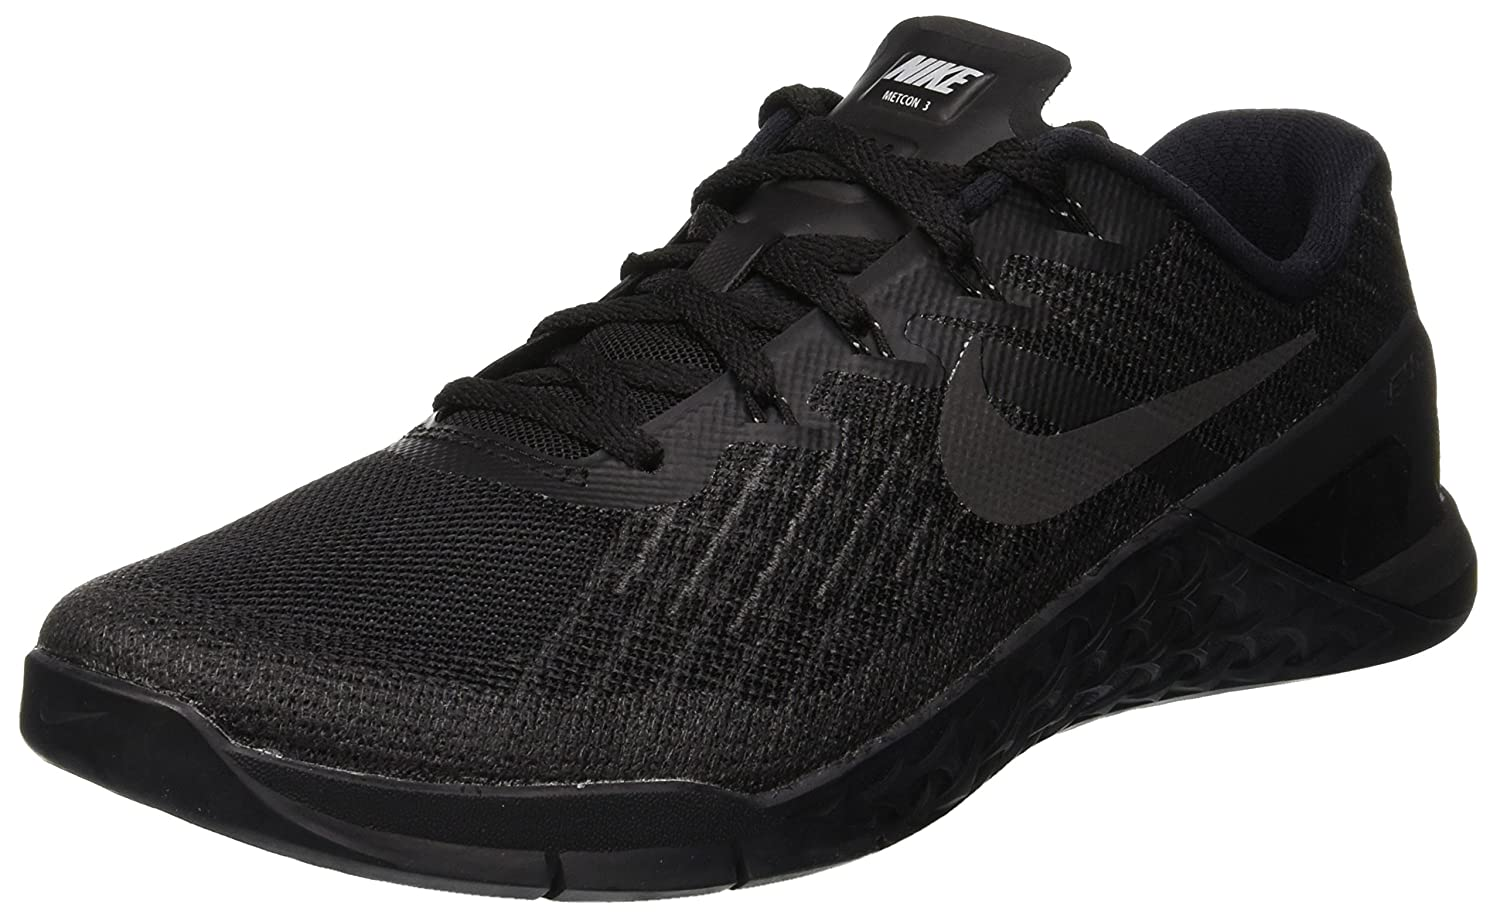 Nike Metcon 3 Mens Training Shoes B01HSDL3TI 8.5 D(M) US|Black/Black